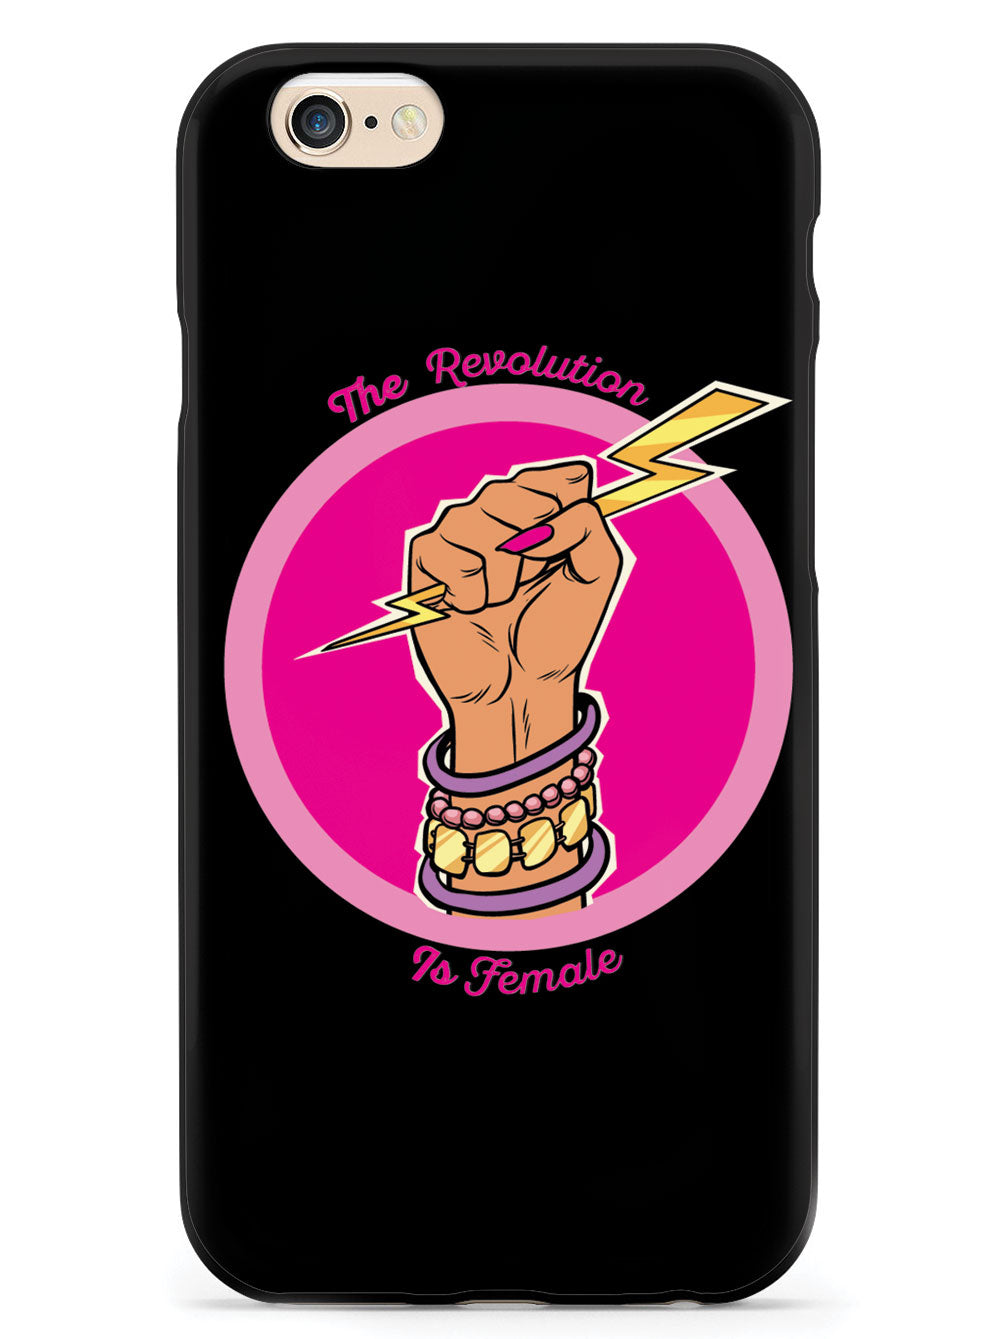 The Revolution Is Female - Black Case